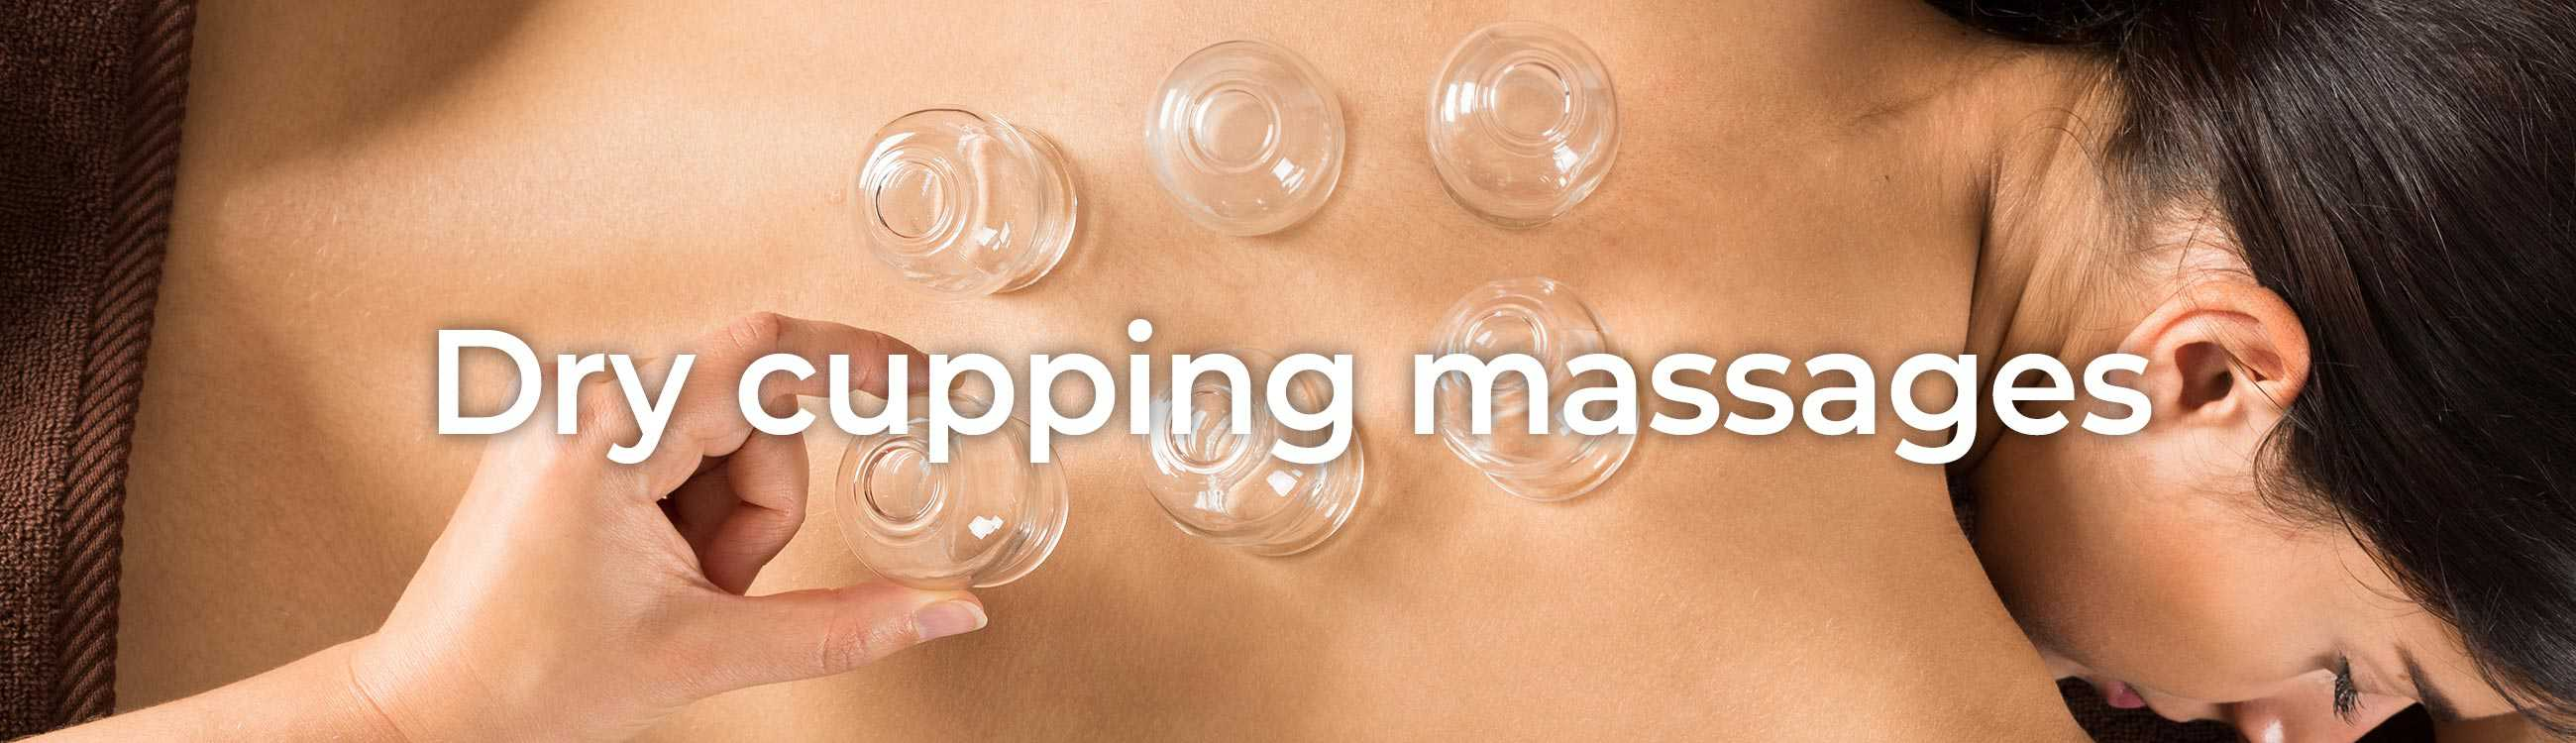 Dry cupping massages